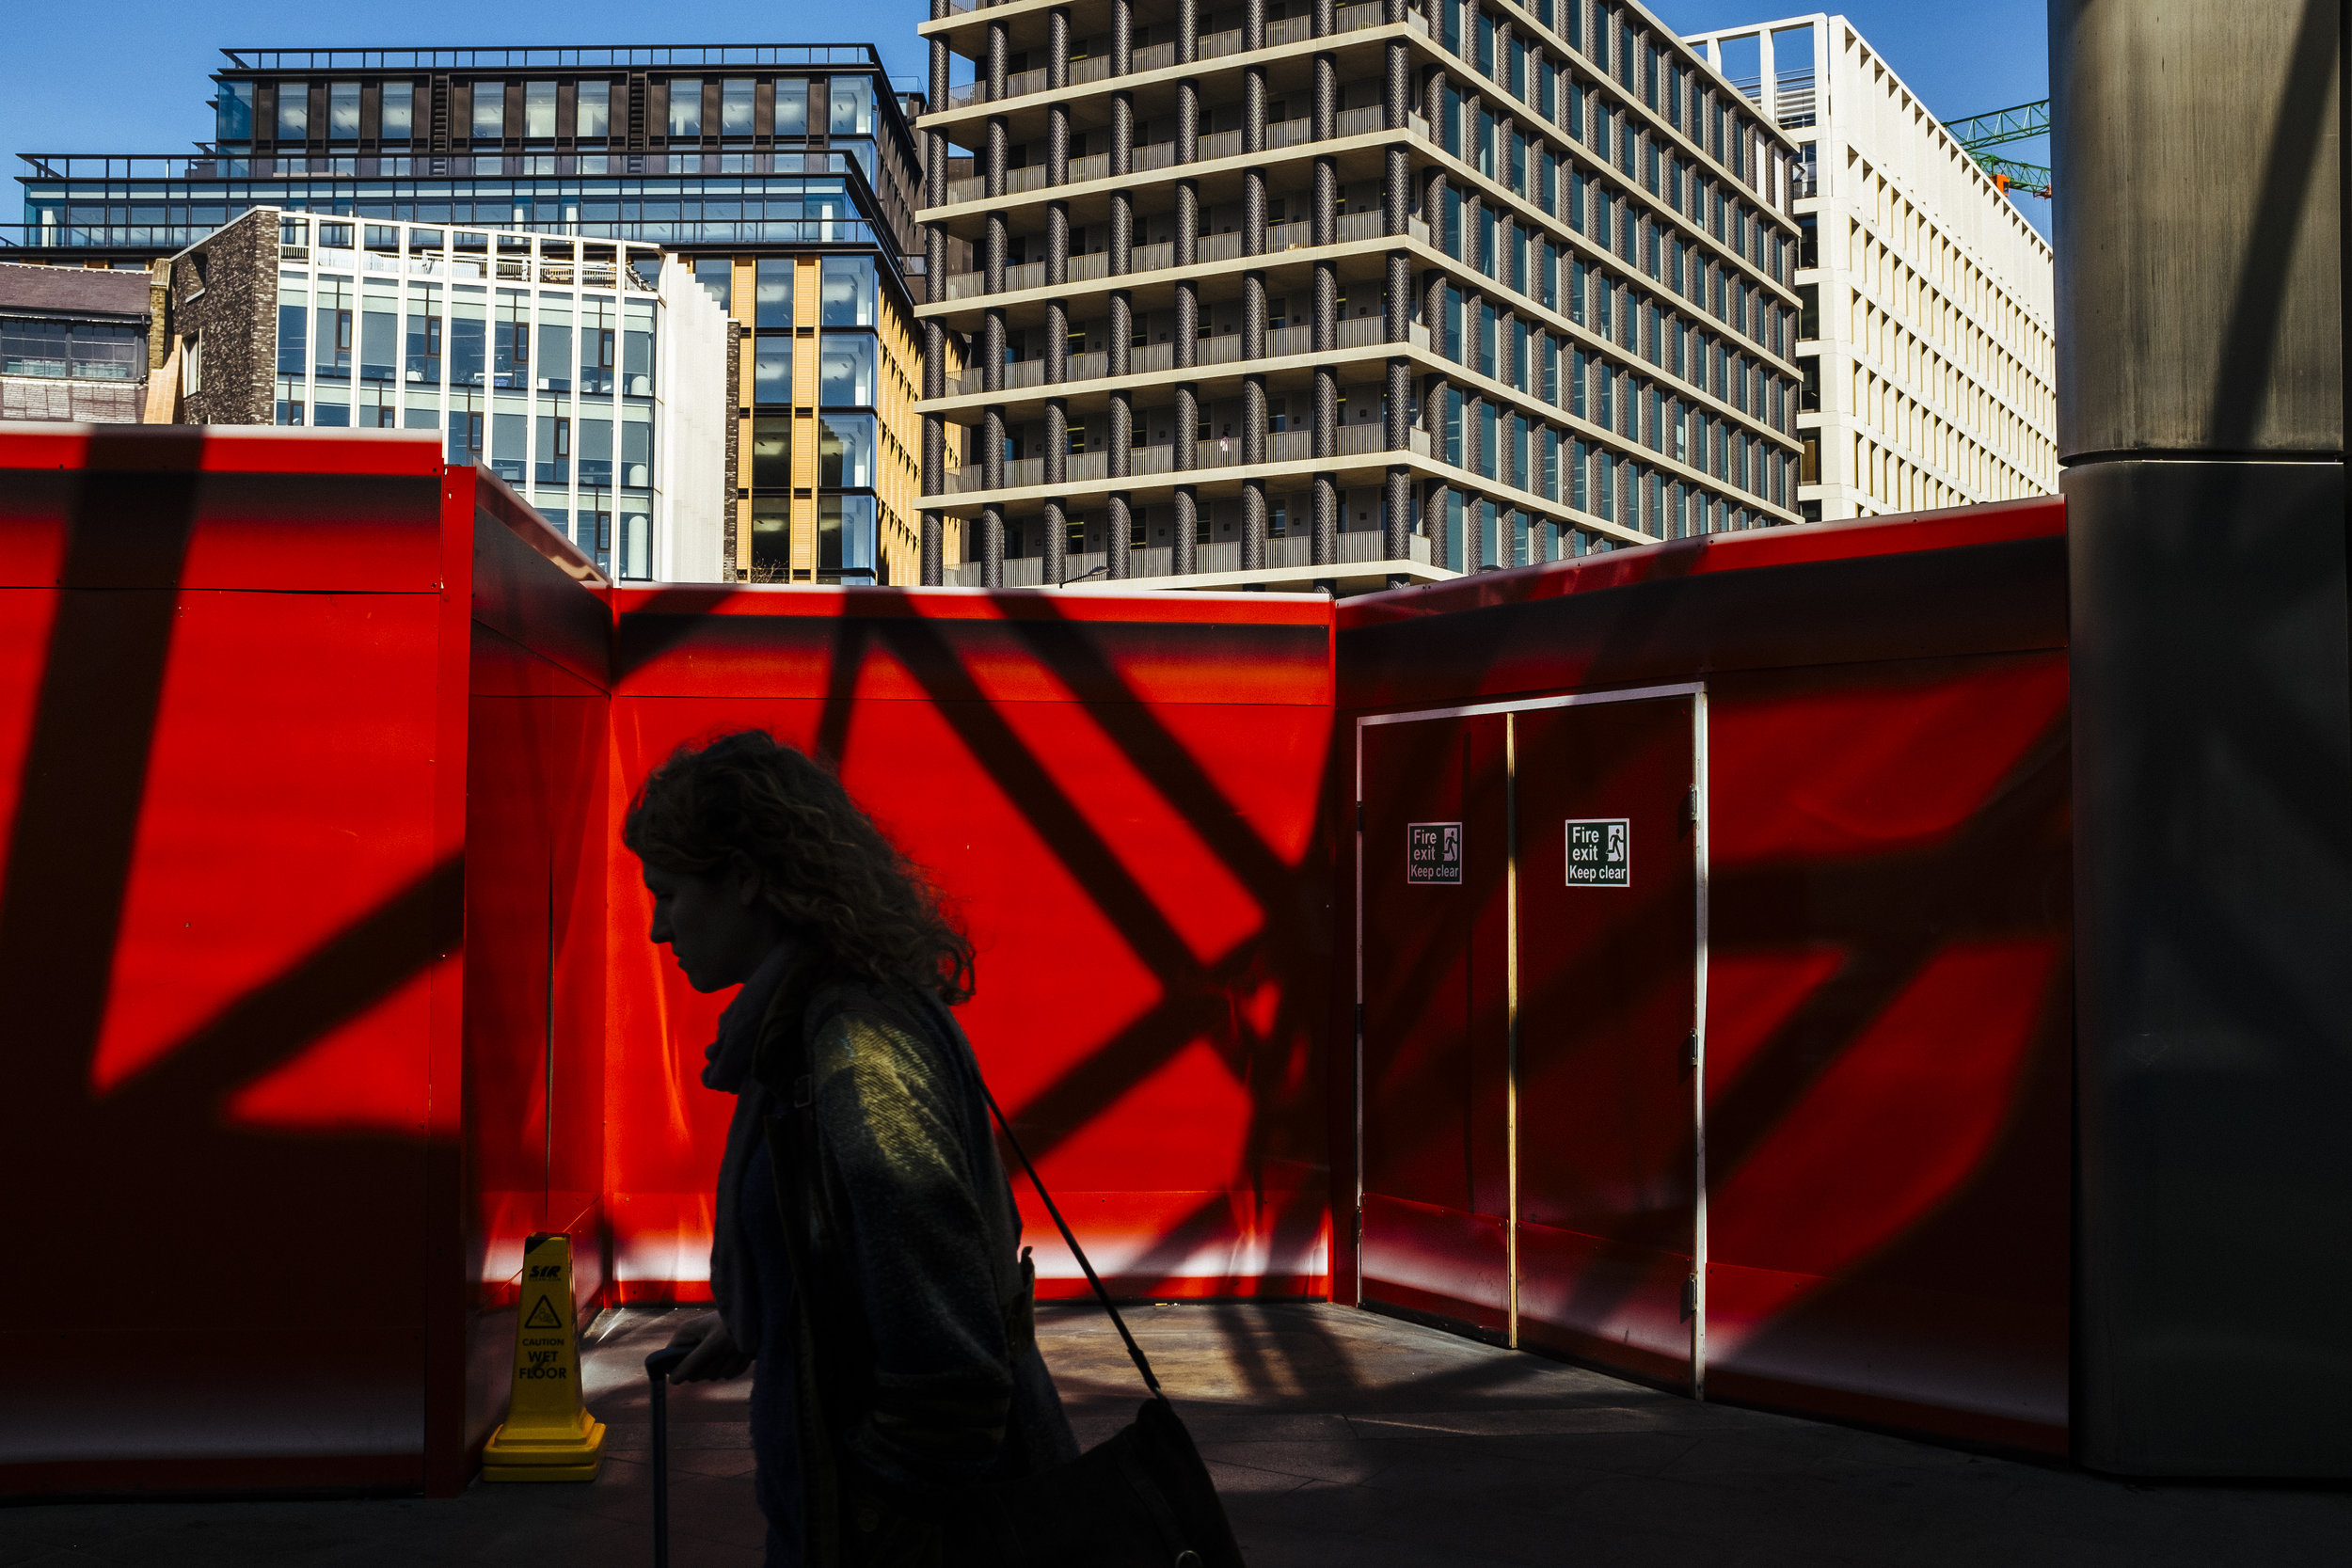 A person walks out of King's Cross railway station, London, England, Tuesday, April 14, 2015.